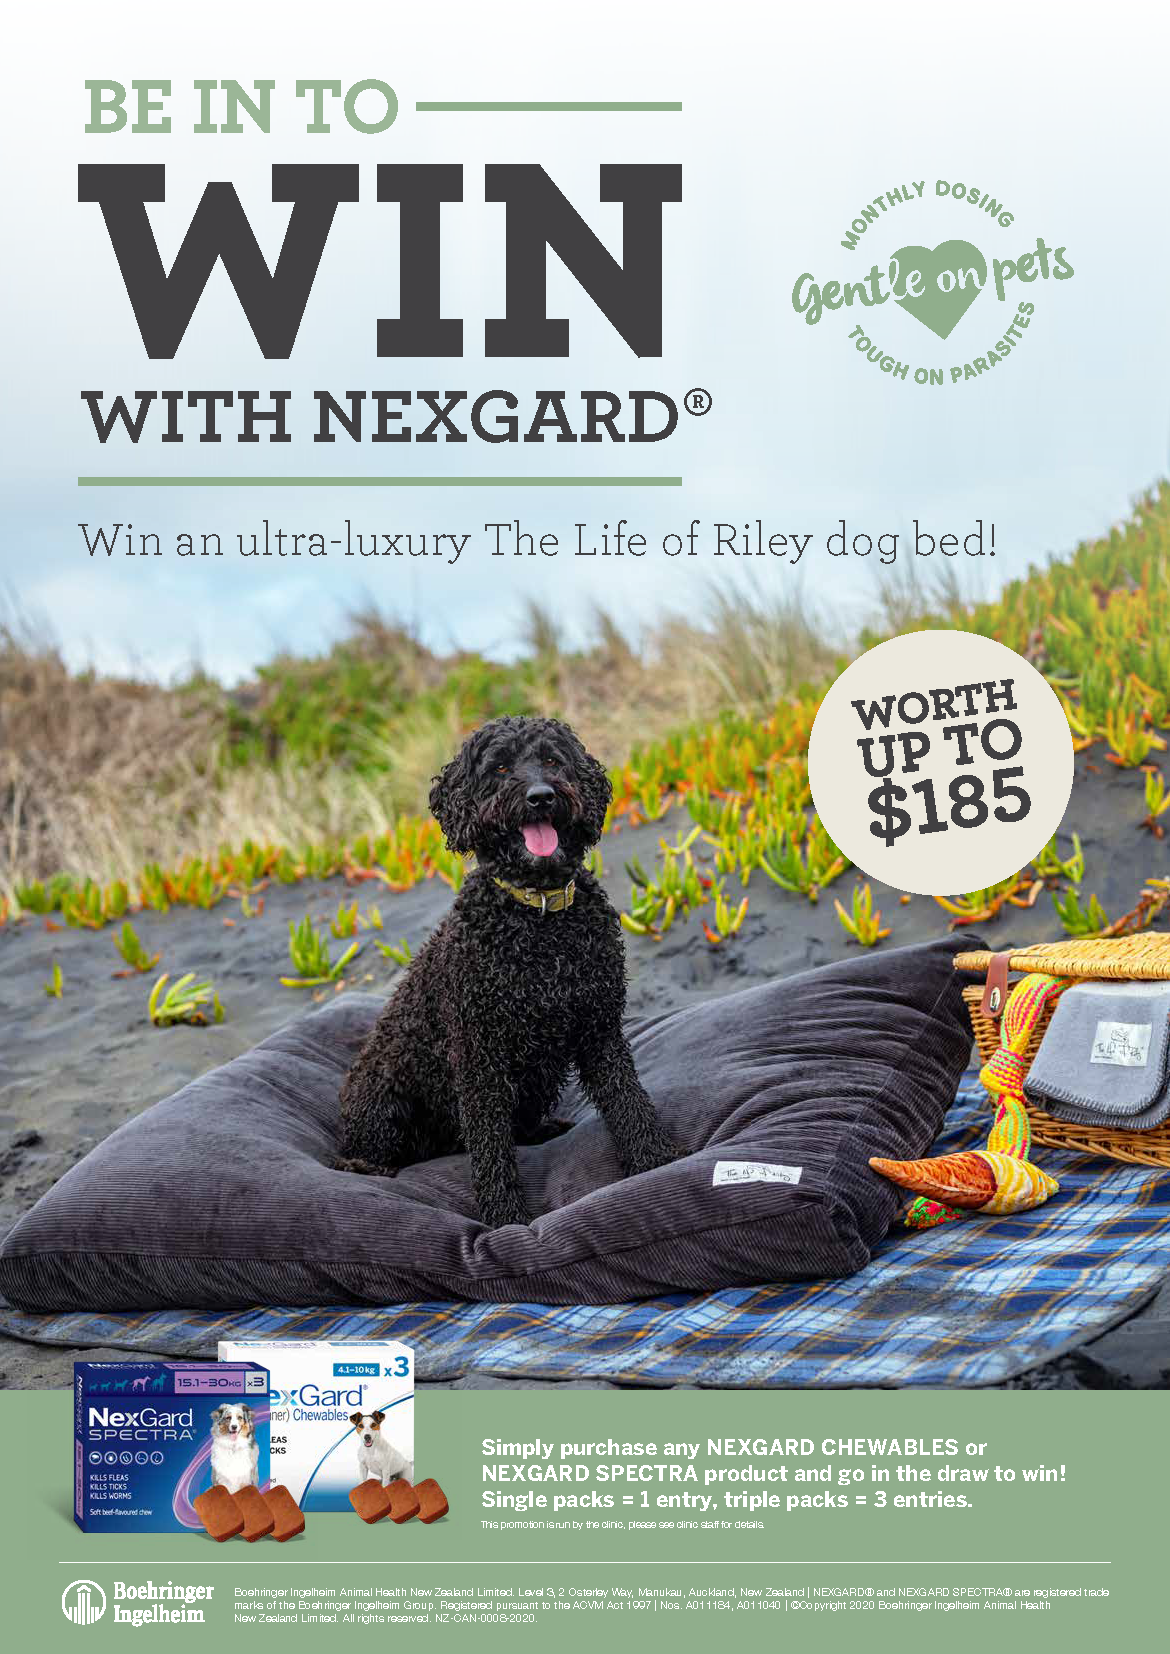 Be Into Win With Nexgard